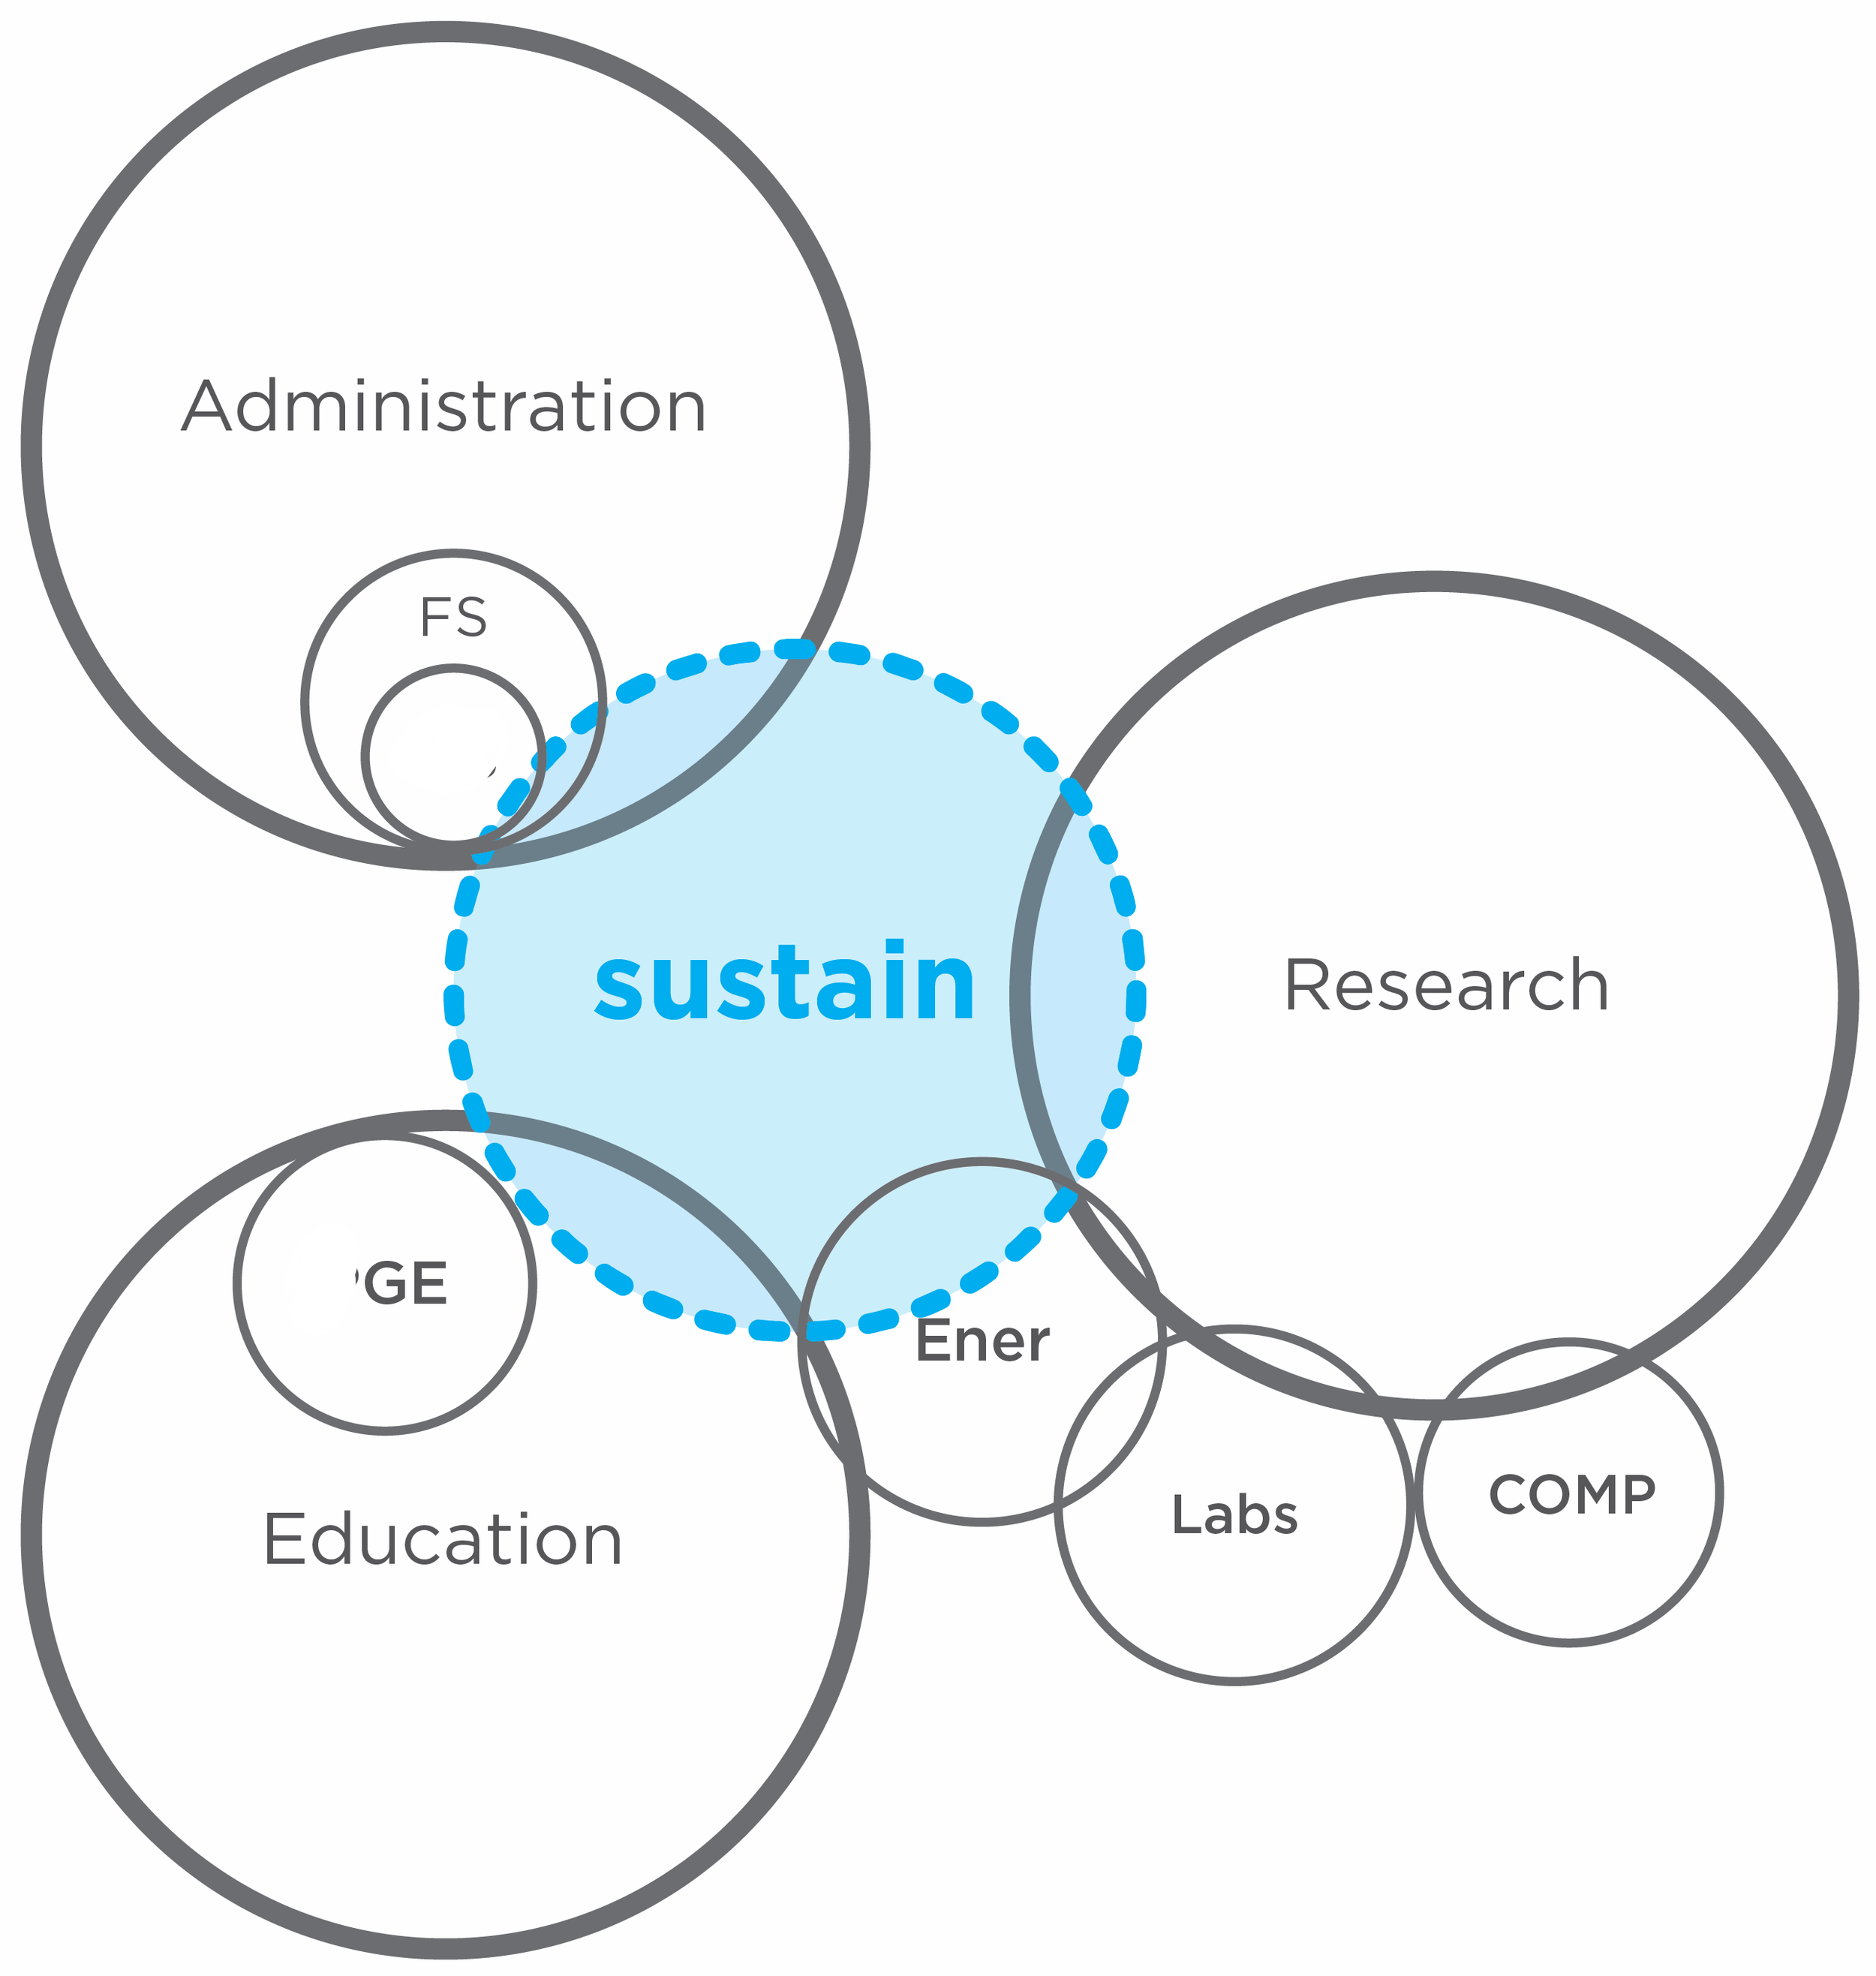 sustainable org diagrams-04.png